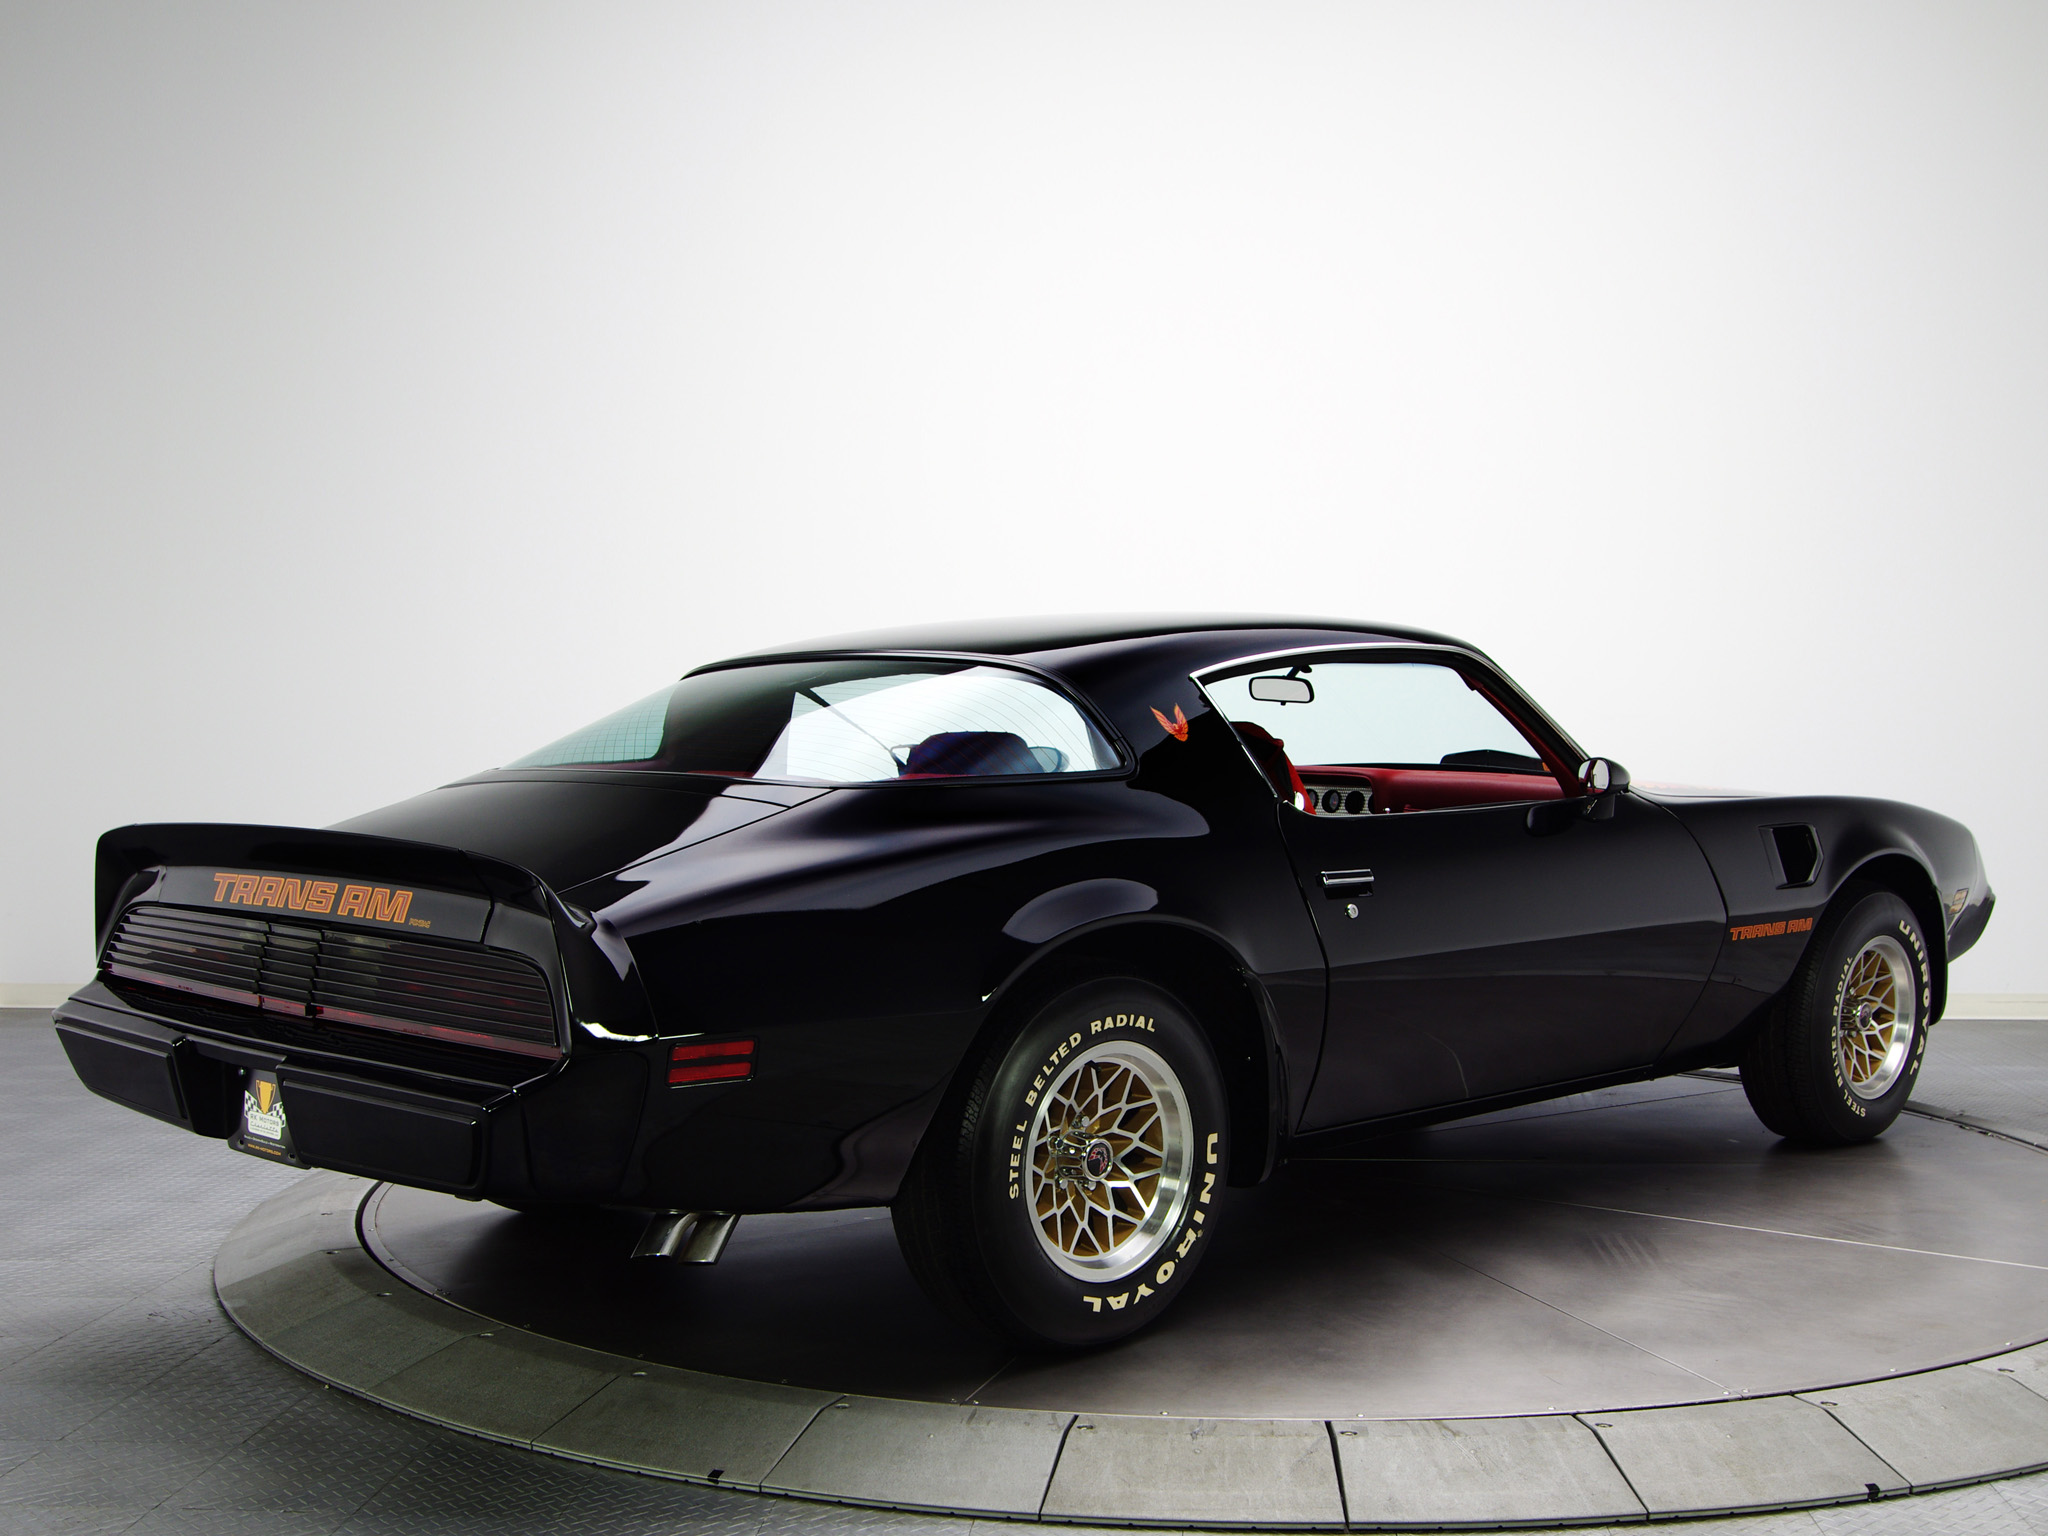 yearone trans am wallpaper - photo #18